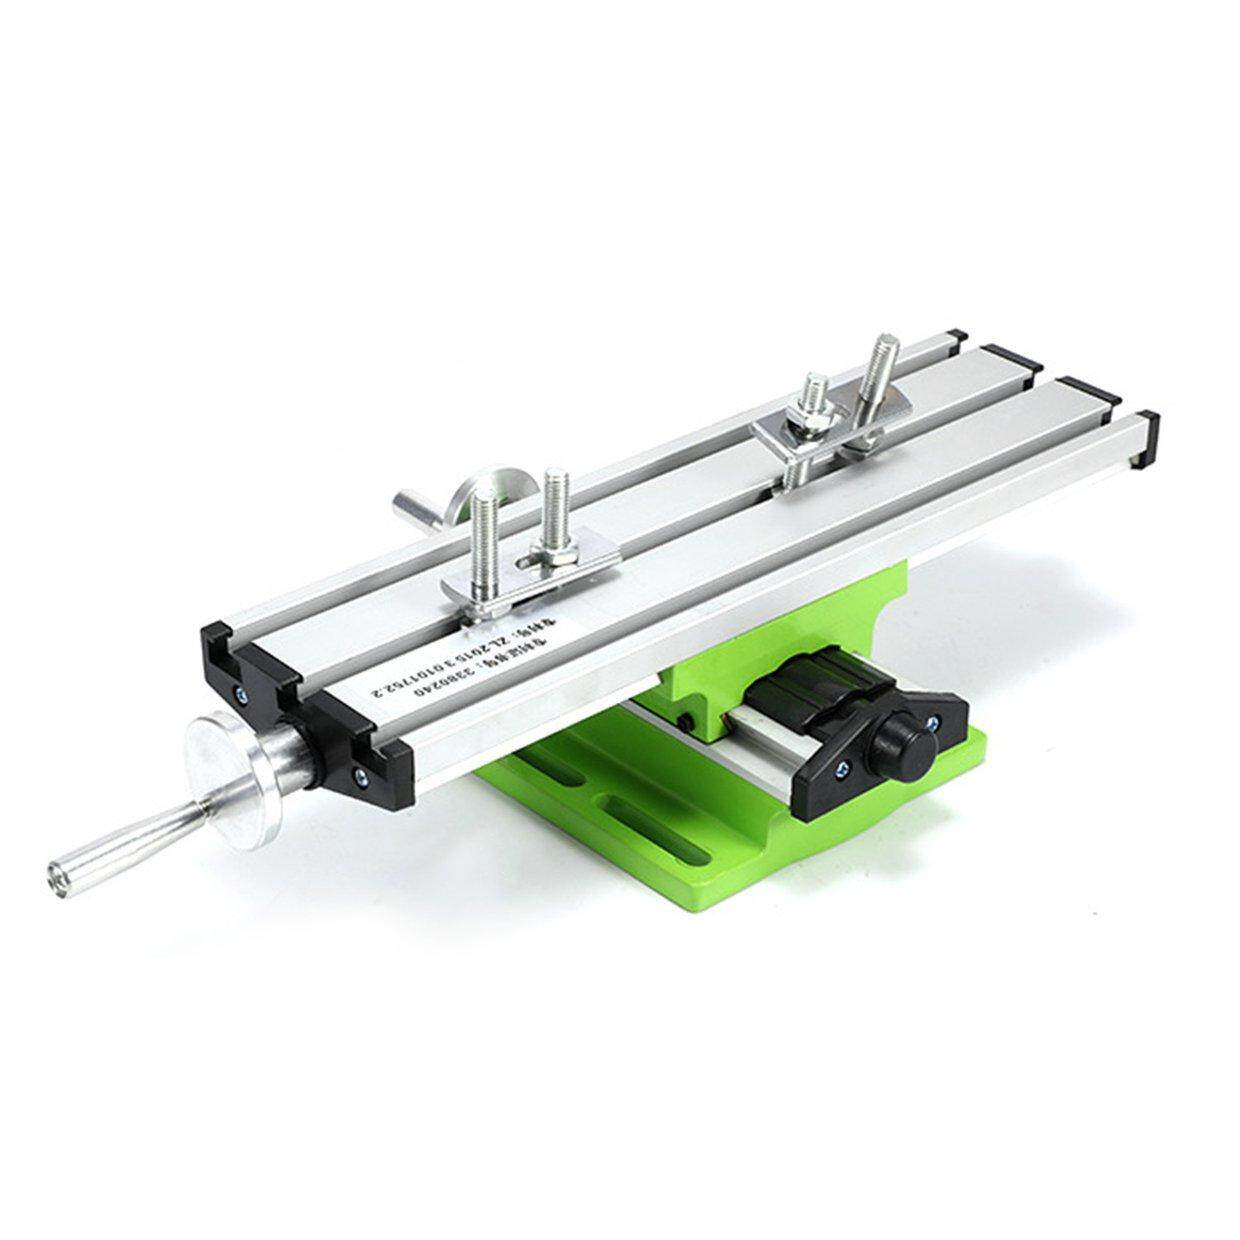 Hot Deals 6300 Mini Precision Multifunction Worktable X Y-axis Adjust Coordinate Table